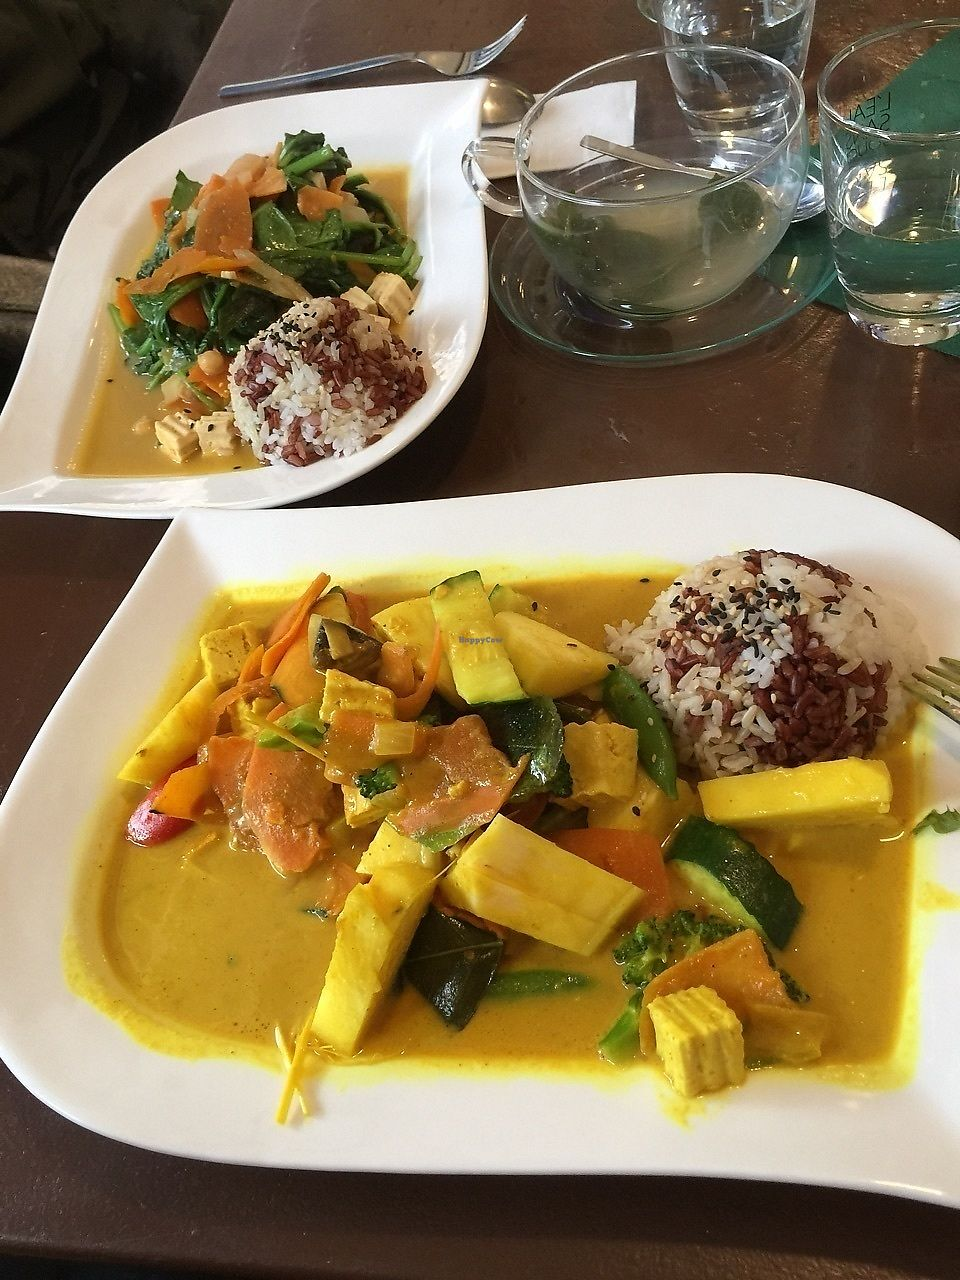 "Photo of Velvet Leaf  by <a href=""/members/profile/Cassidy13K"">Cassidy13K</a> <br/>Delicious, cheap and super healthy ananas curry and spinach dish with a side of mixed kinds of rice and tasty tea <br/> November 14, 2017  - <a href='/contact/abuse/image/58841/325627'>Report</a>"